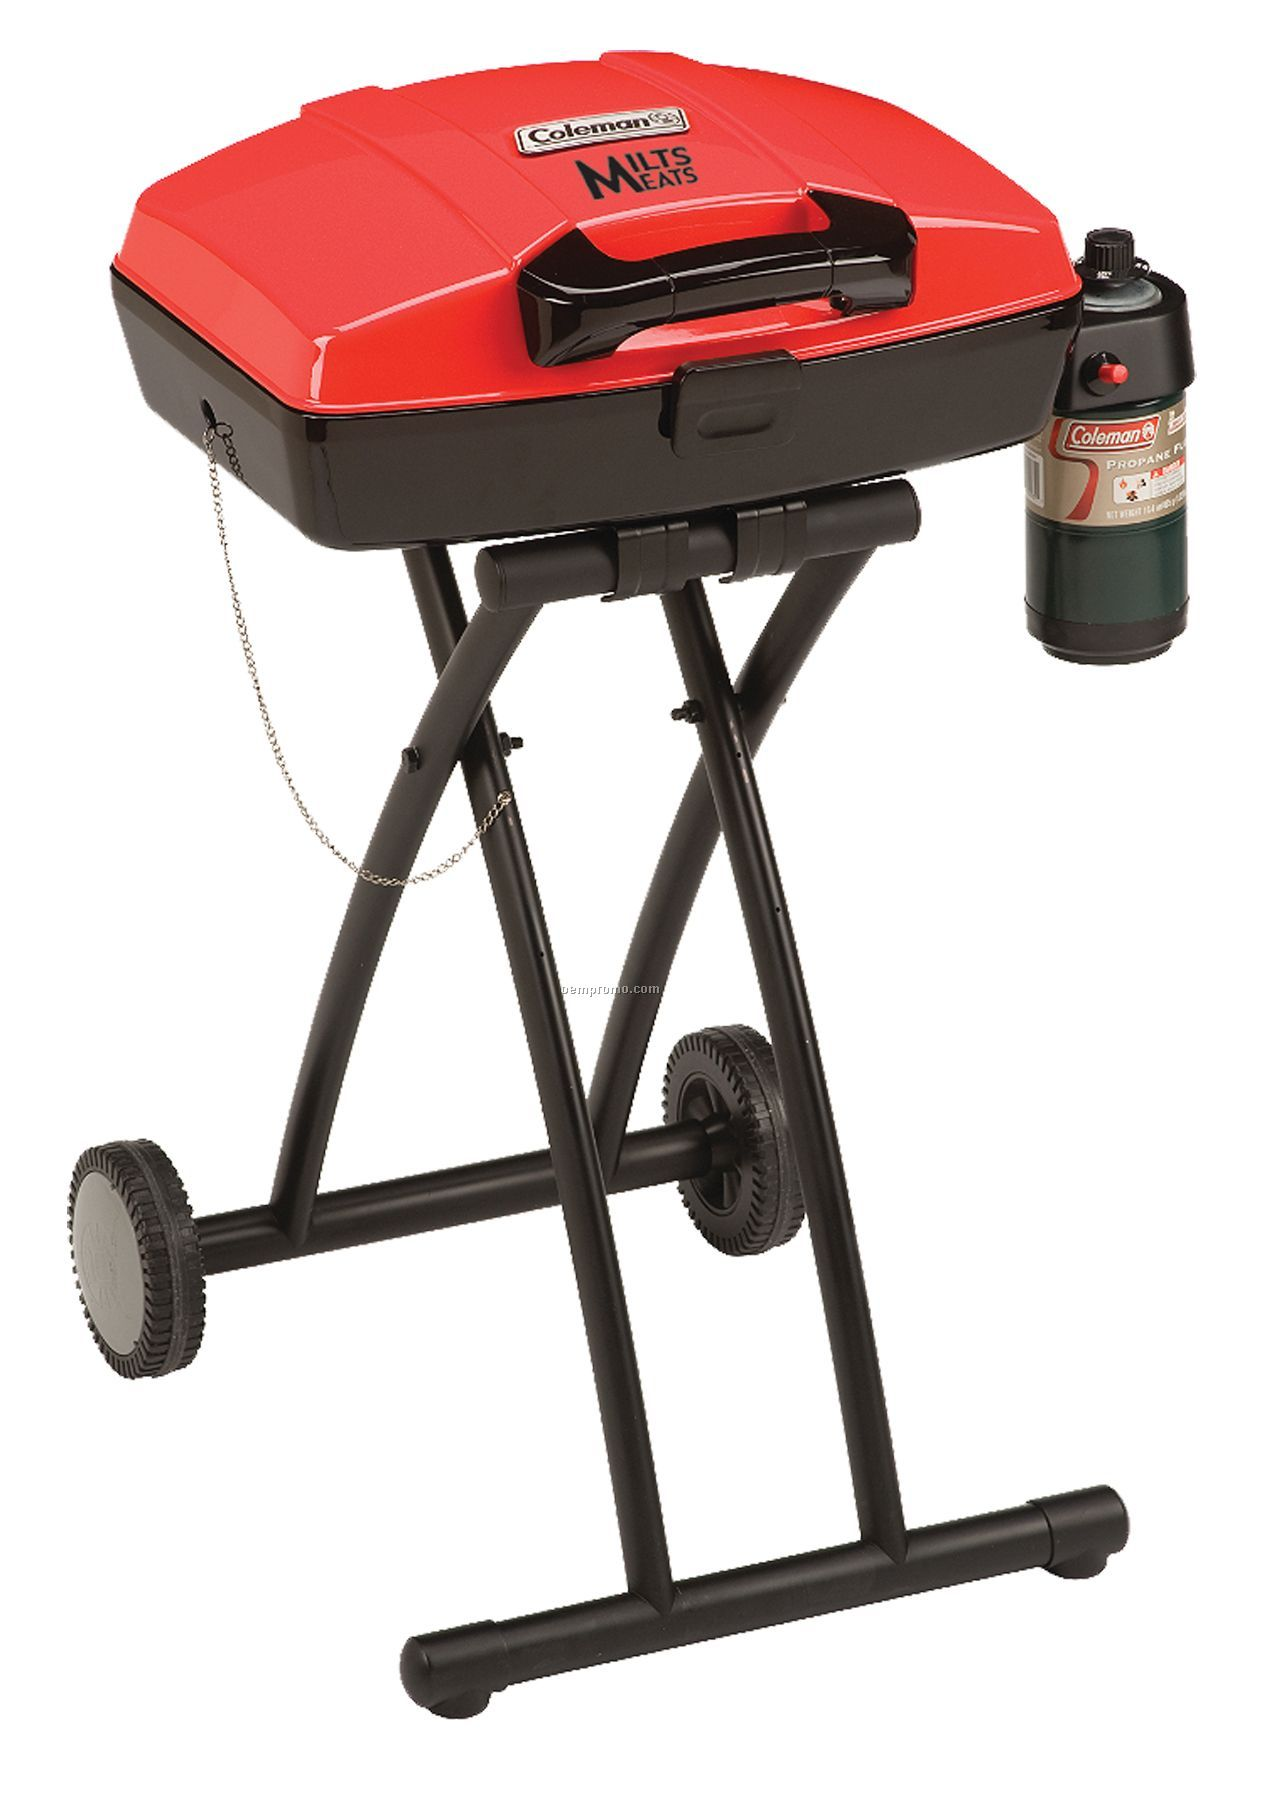 GEORGE FOREMAN GP324SS OUTDOOR PROPANE GRILL   PRICES, REVIEWS